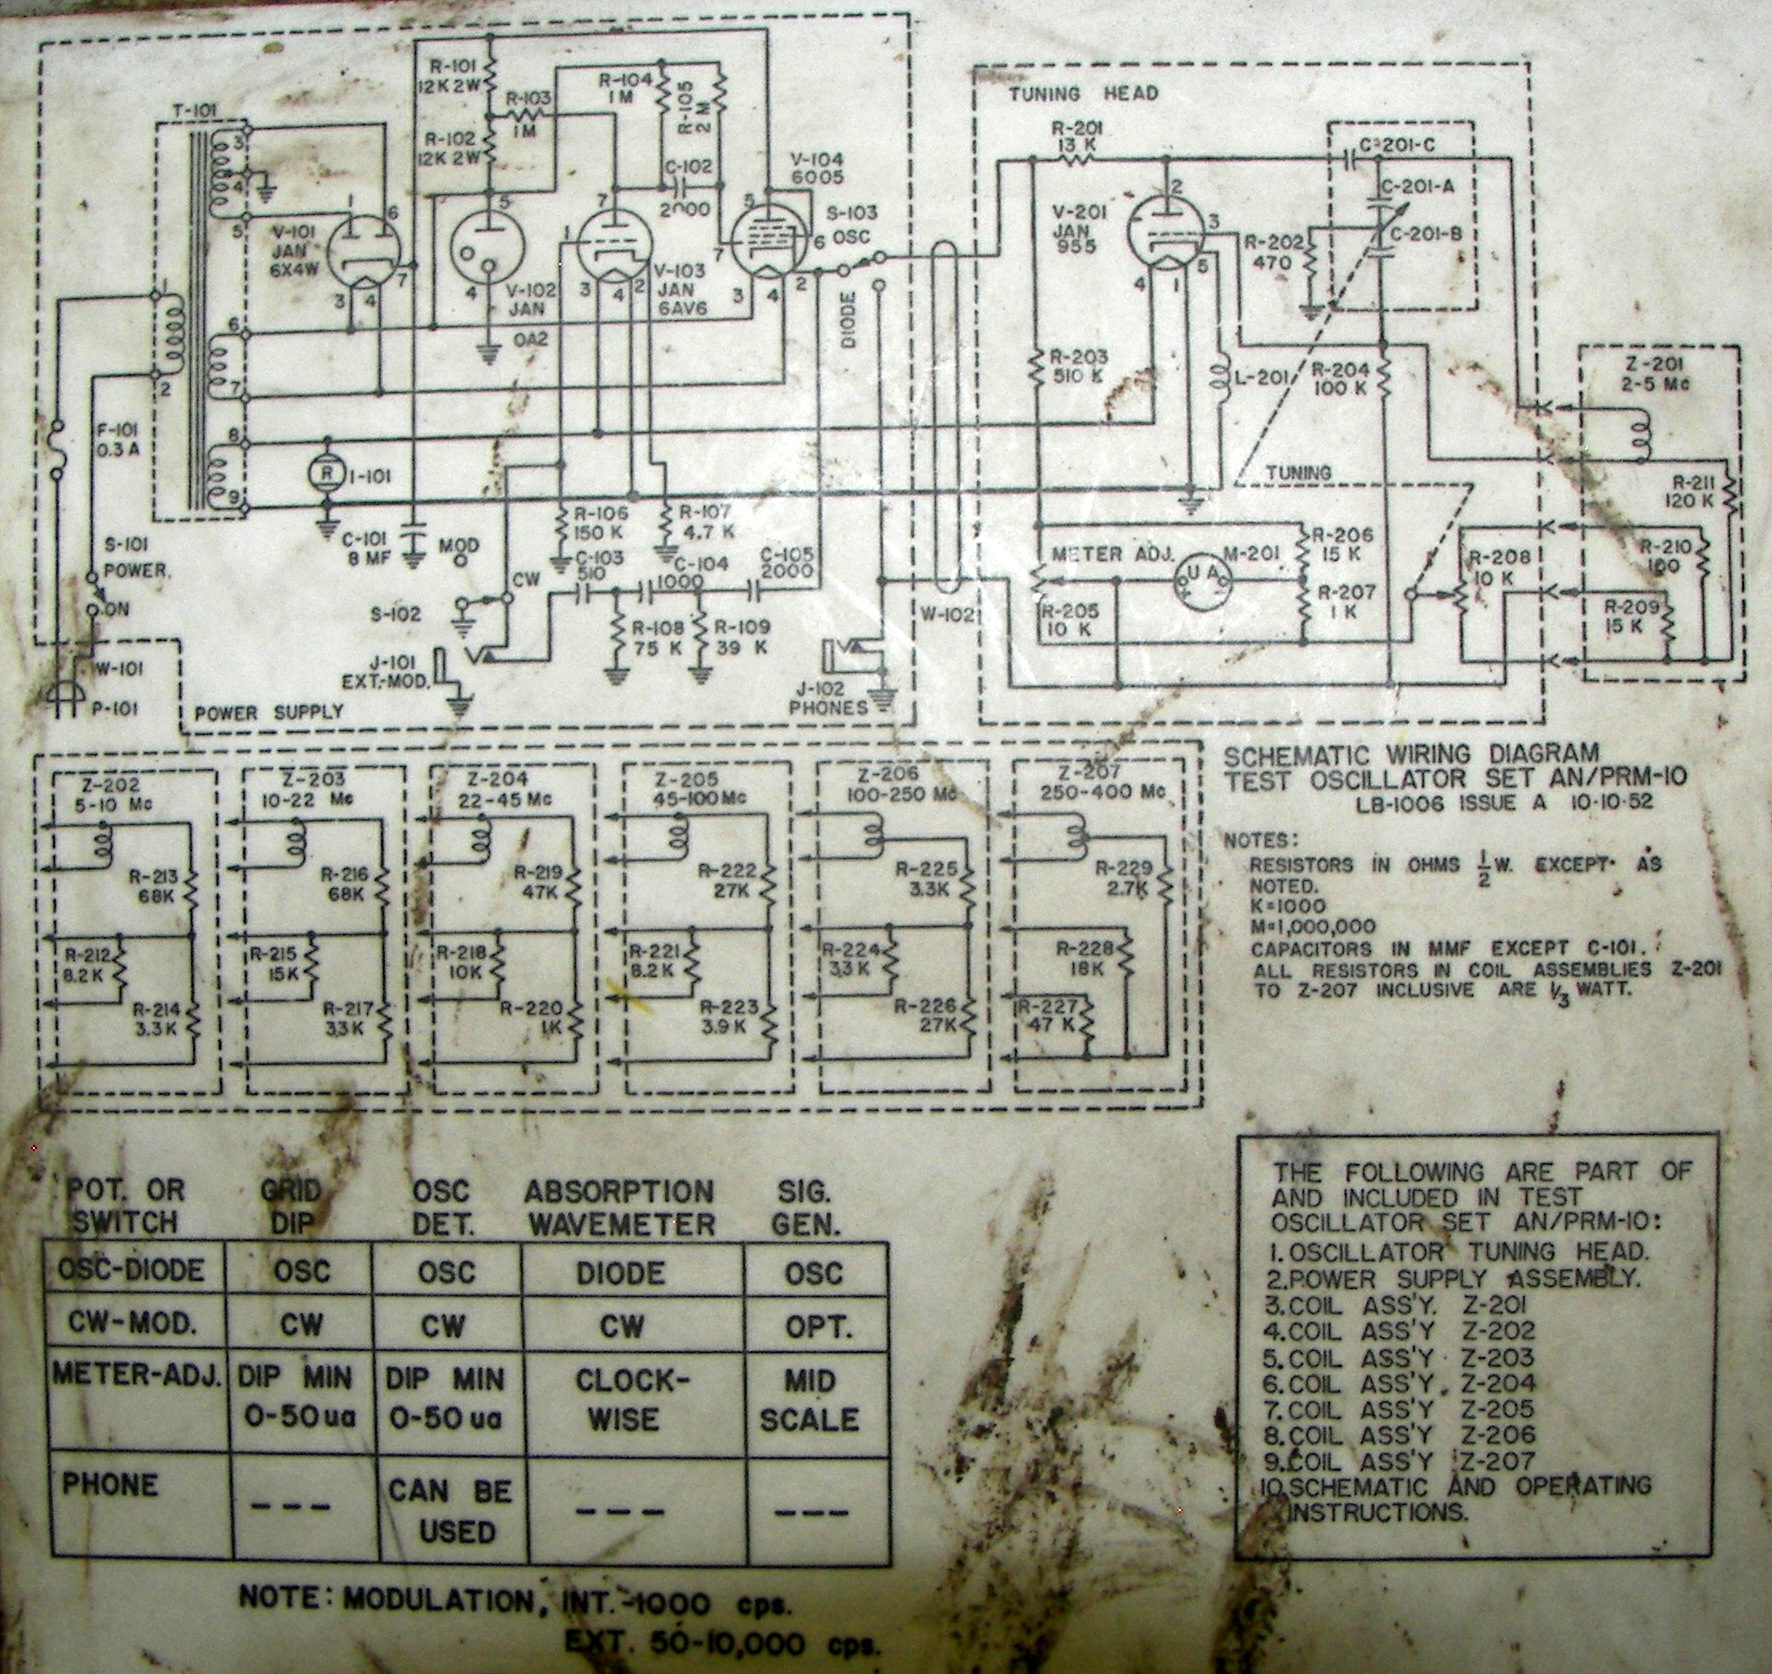 m35a2 air system schematic m35a2 free engine image for user manual